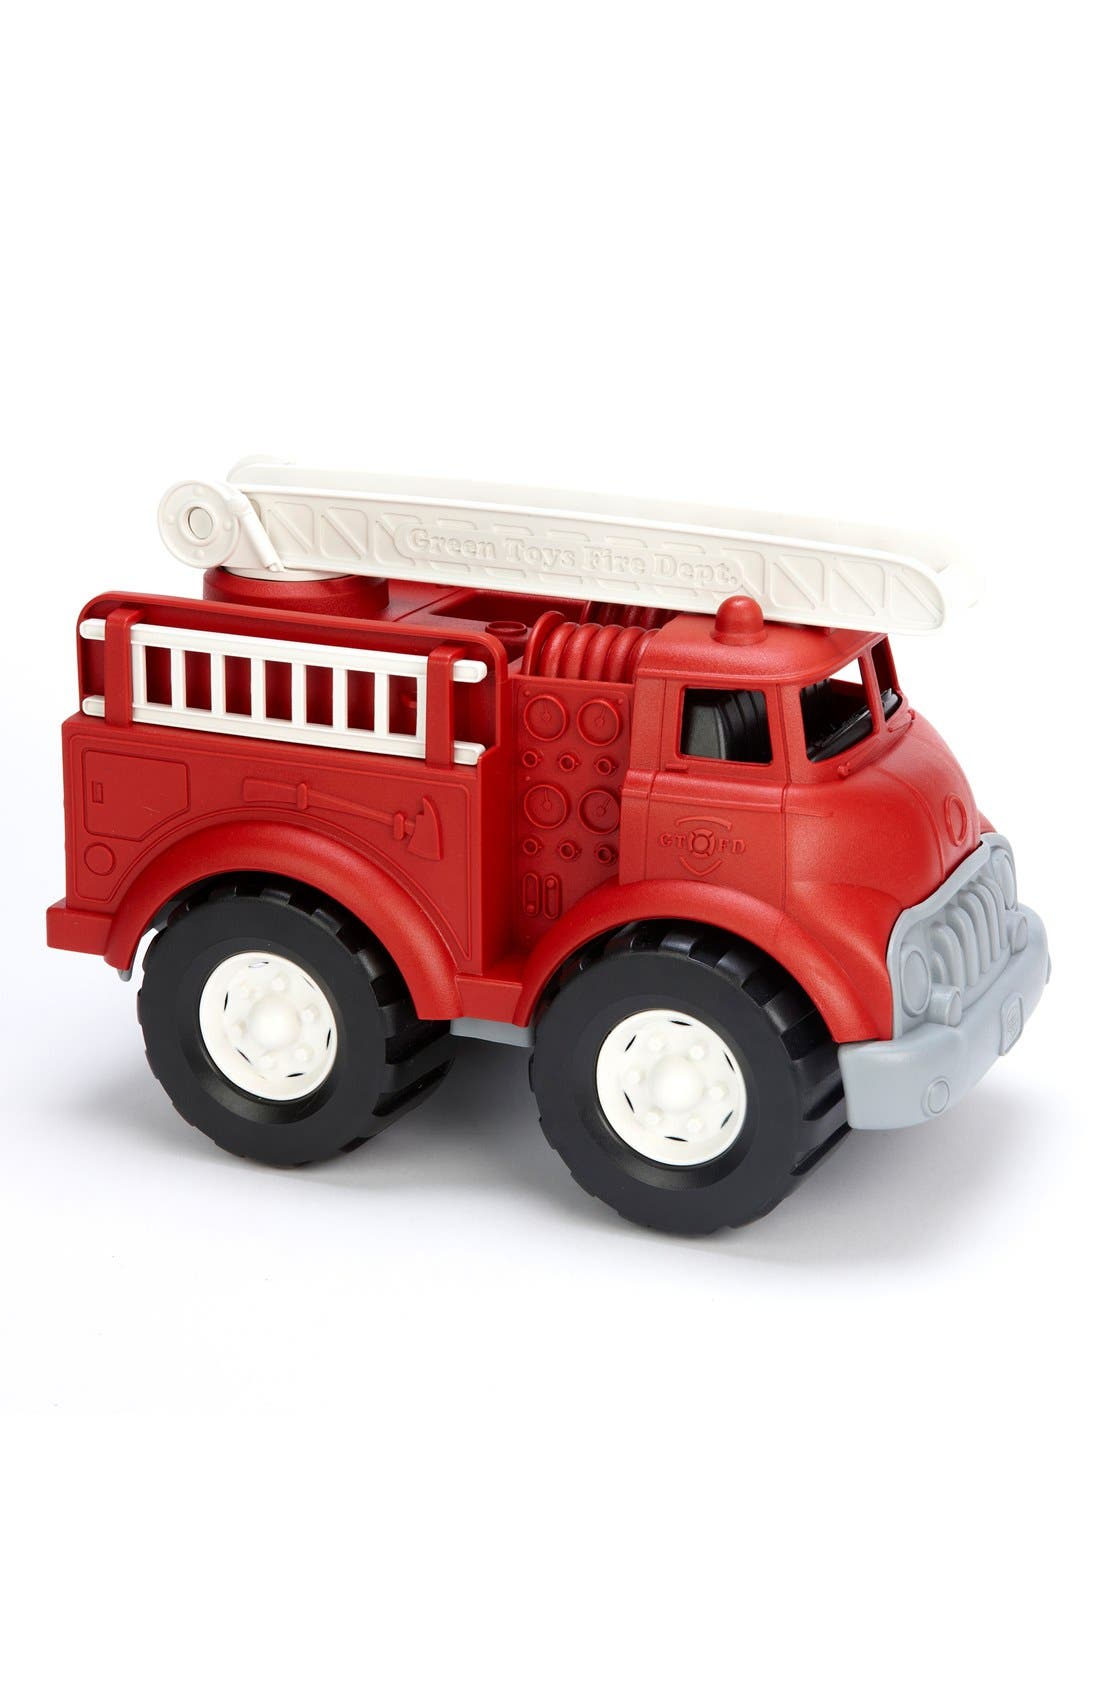 Main Image - Green Toys Fire Truck Toy